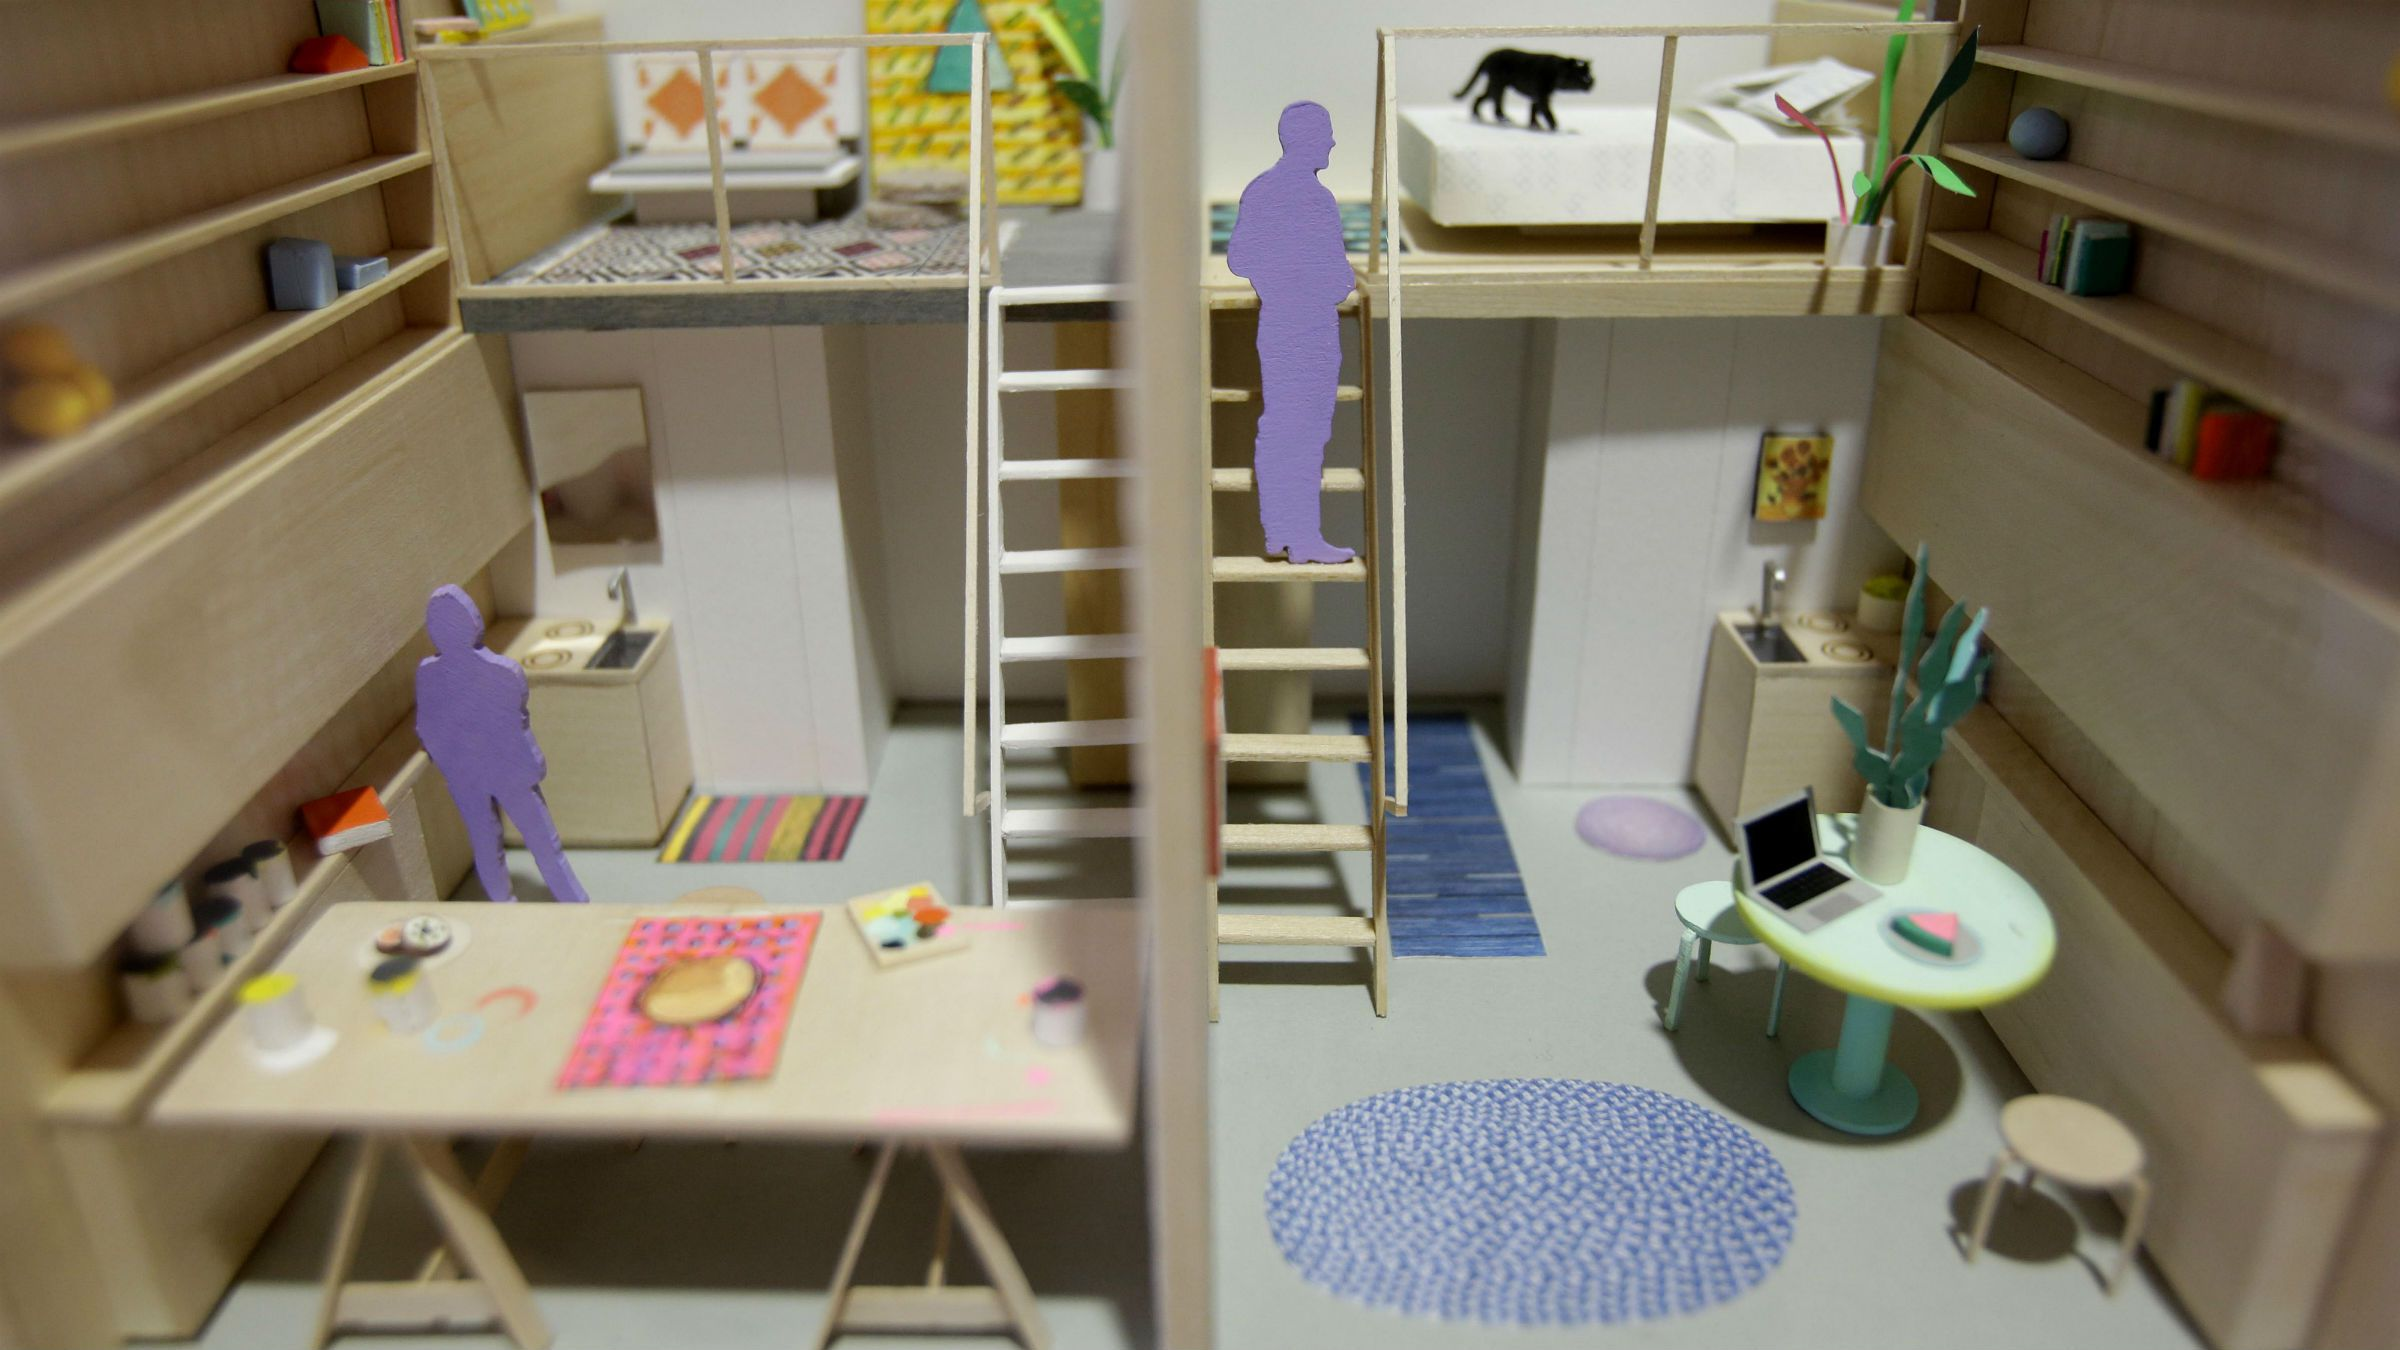 "A model of micro-apartments are displayed at an exhibit called ""Making Room: Models for Housing New Yorkers"" at the Museum of the City of New York in New York, Tuesday, Jan. 15, 2013. The exhibit grew out of the city's PlaNYC, which projected the city's population will grow by about 600,000 people by 2030."